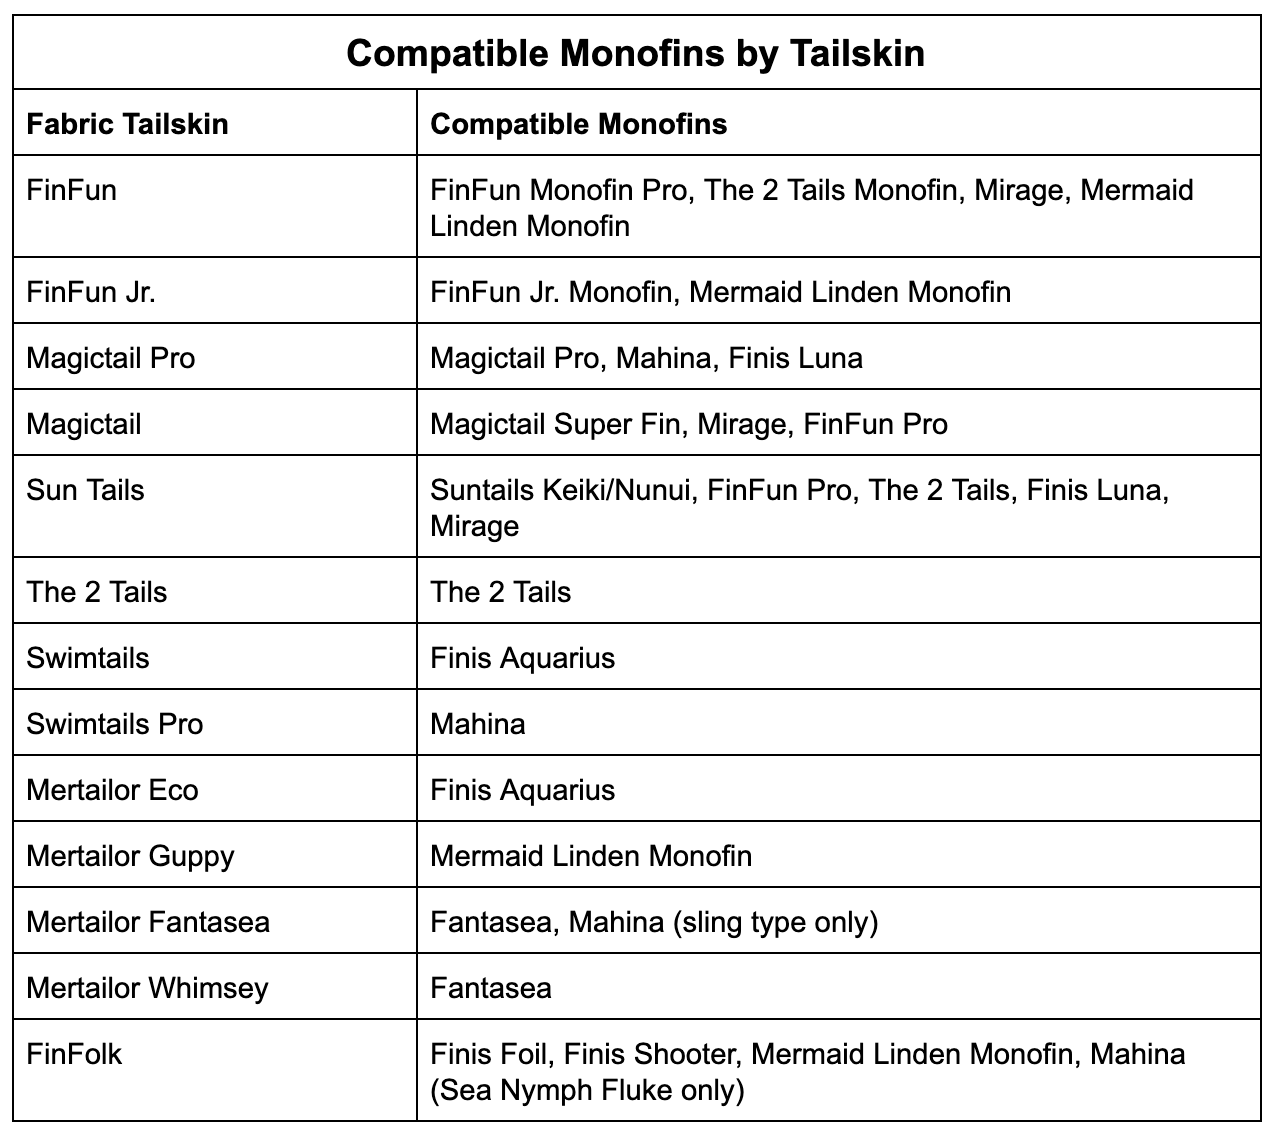 Name:  Compatible Monofins by Tailskin.png